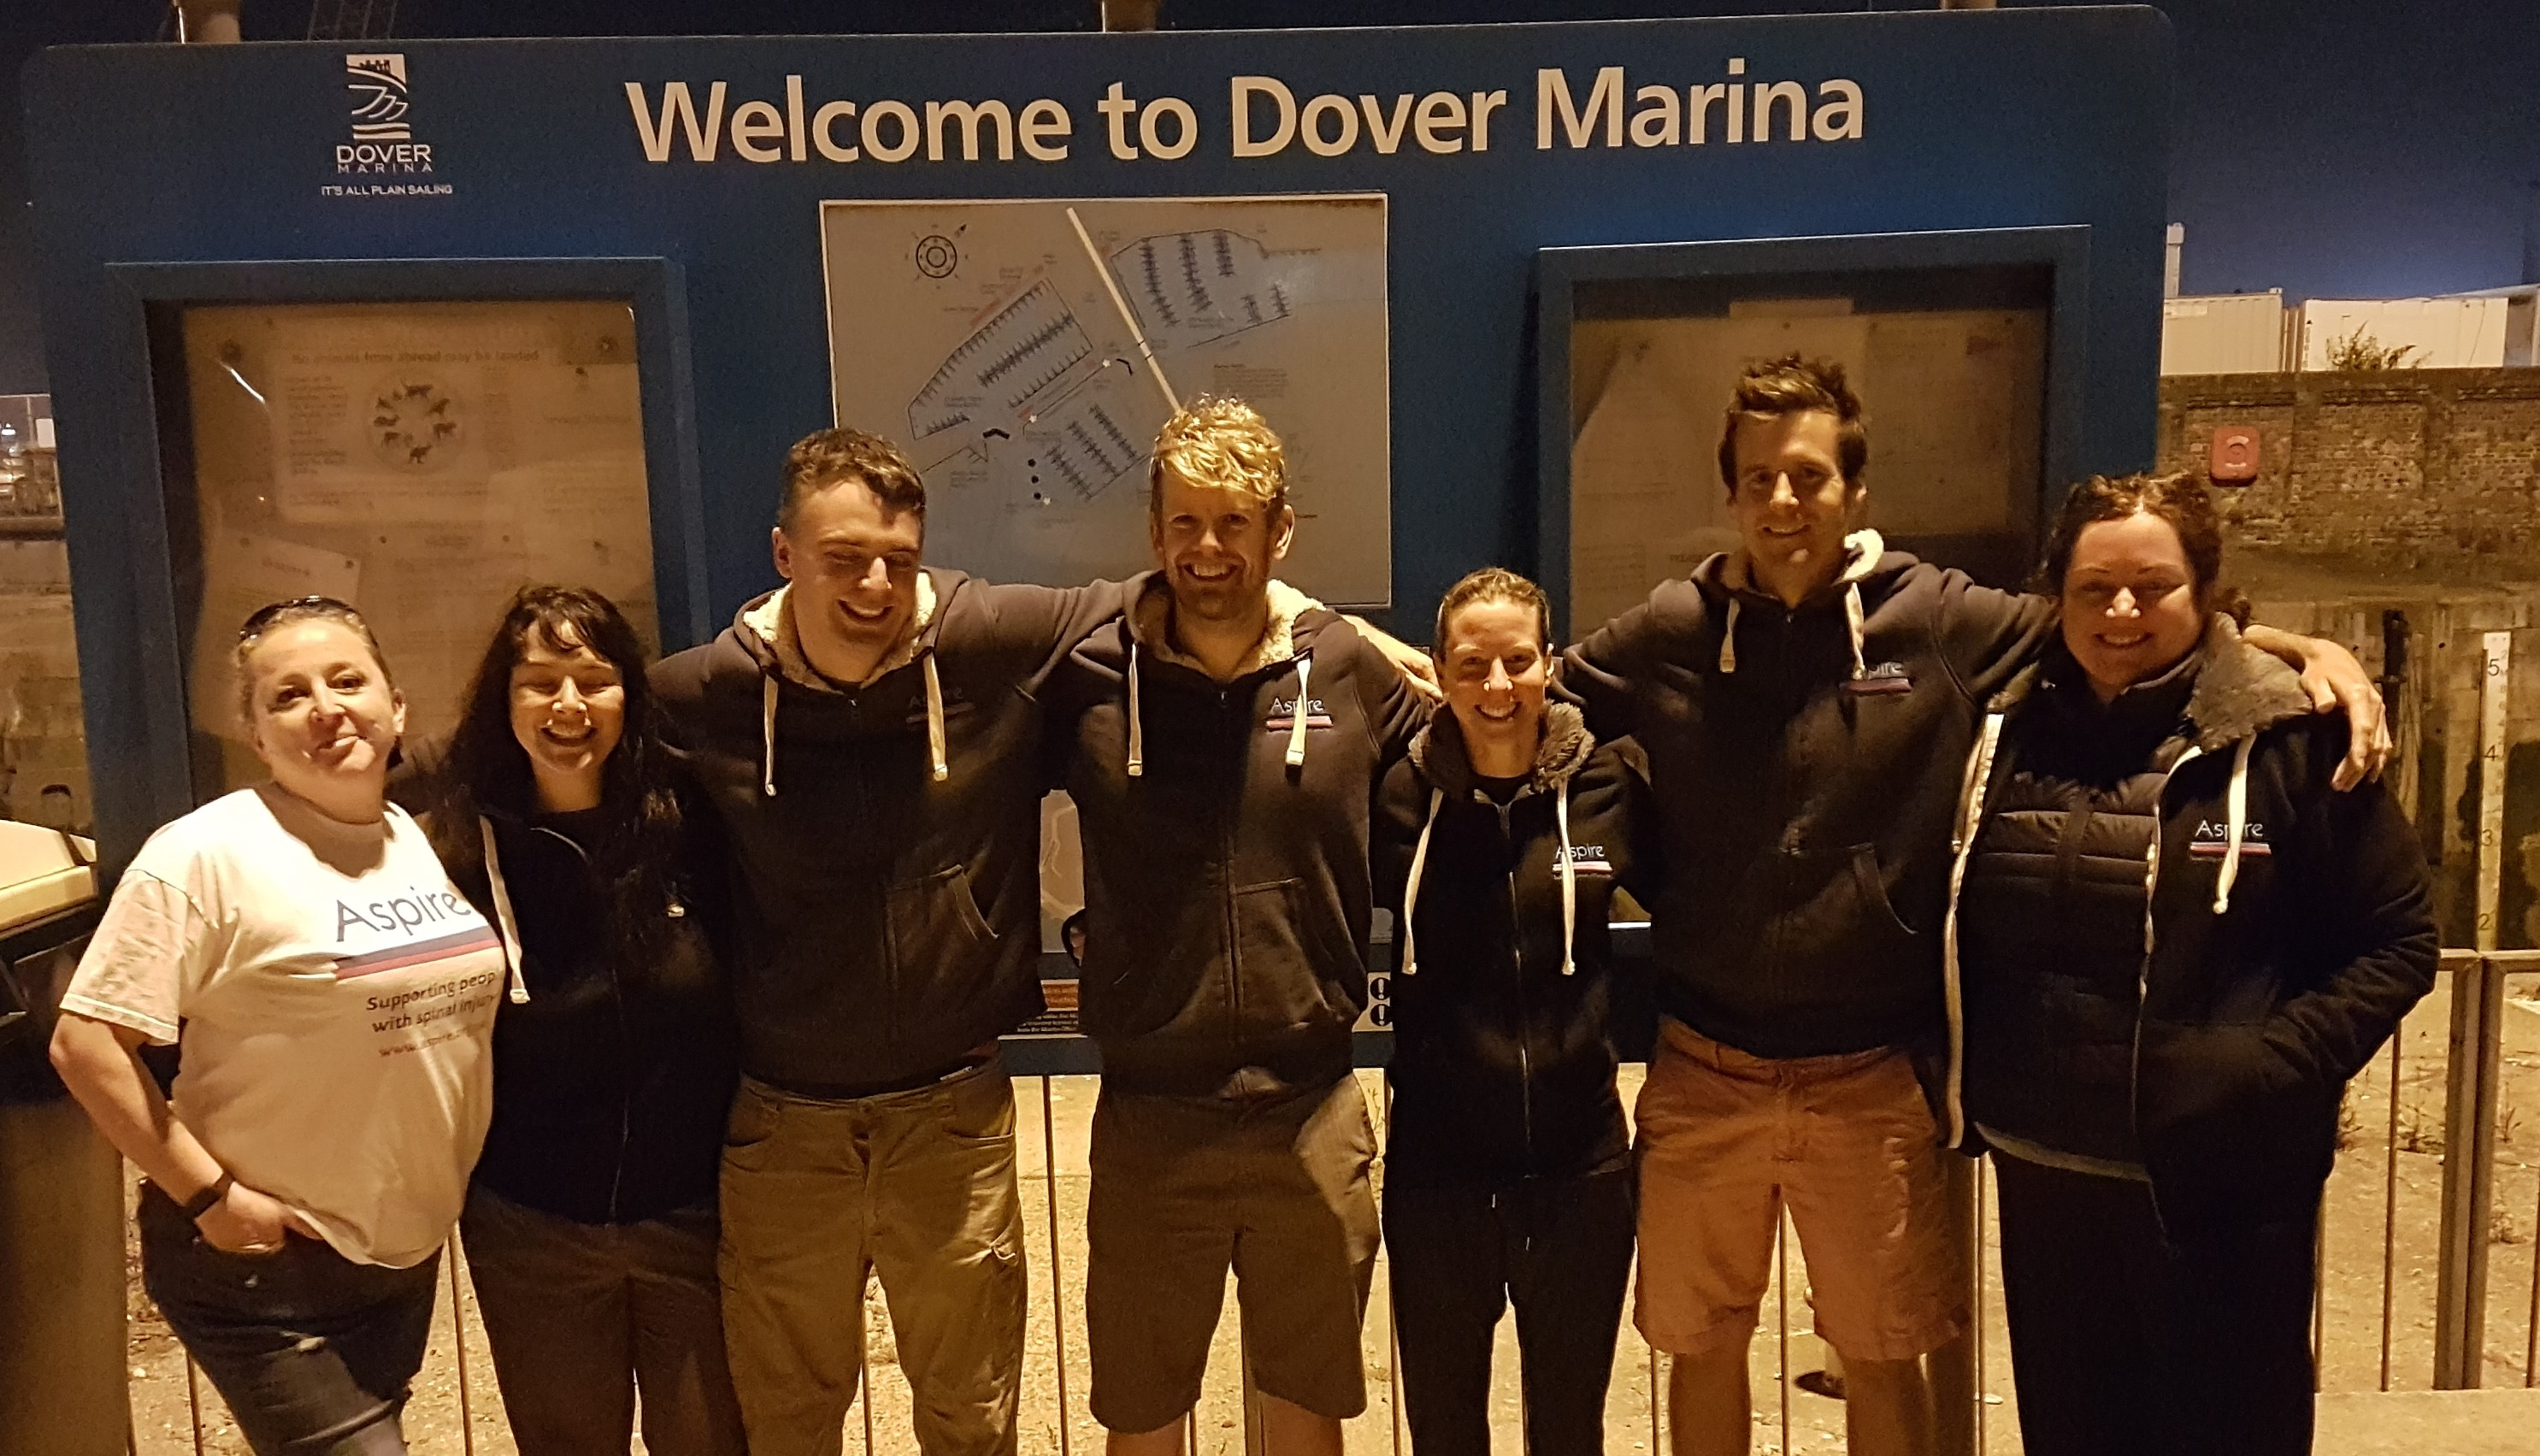 Team Frogfish at Dover Marina ahead of their swim